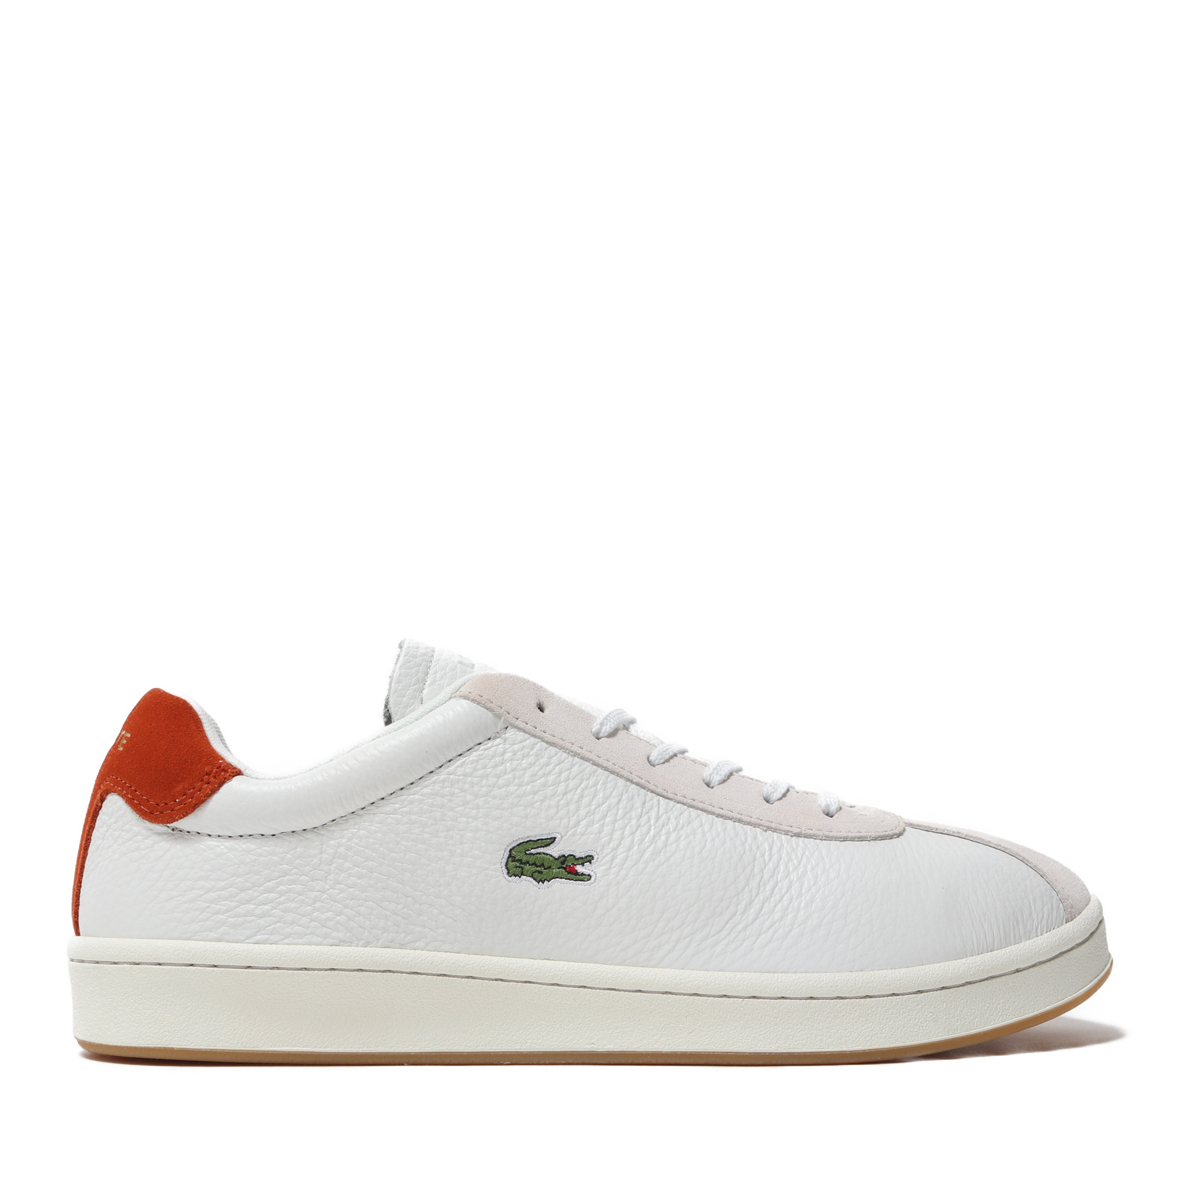 LACOSTE MASTERS 119 3(OFF WHT/RED)(ラコステ マスターズ 119 2)【メンズ】【スニーカー】【19SP-I】